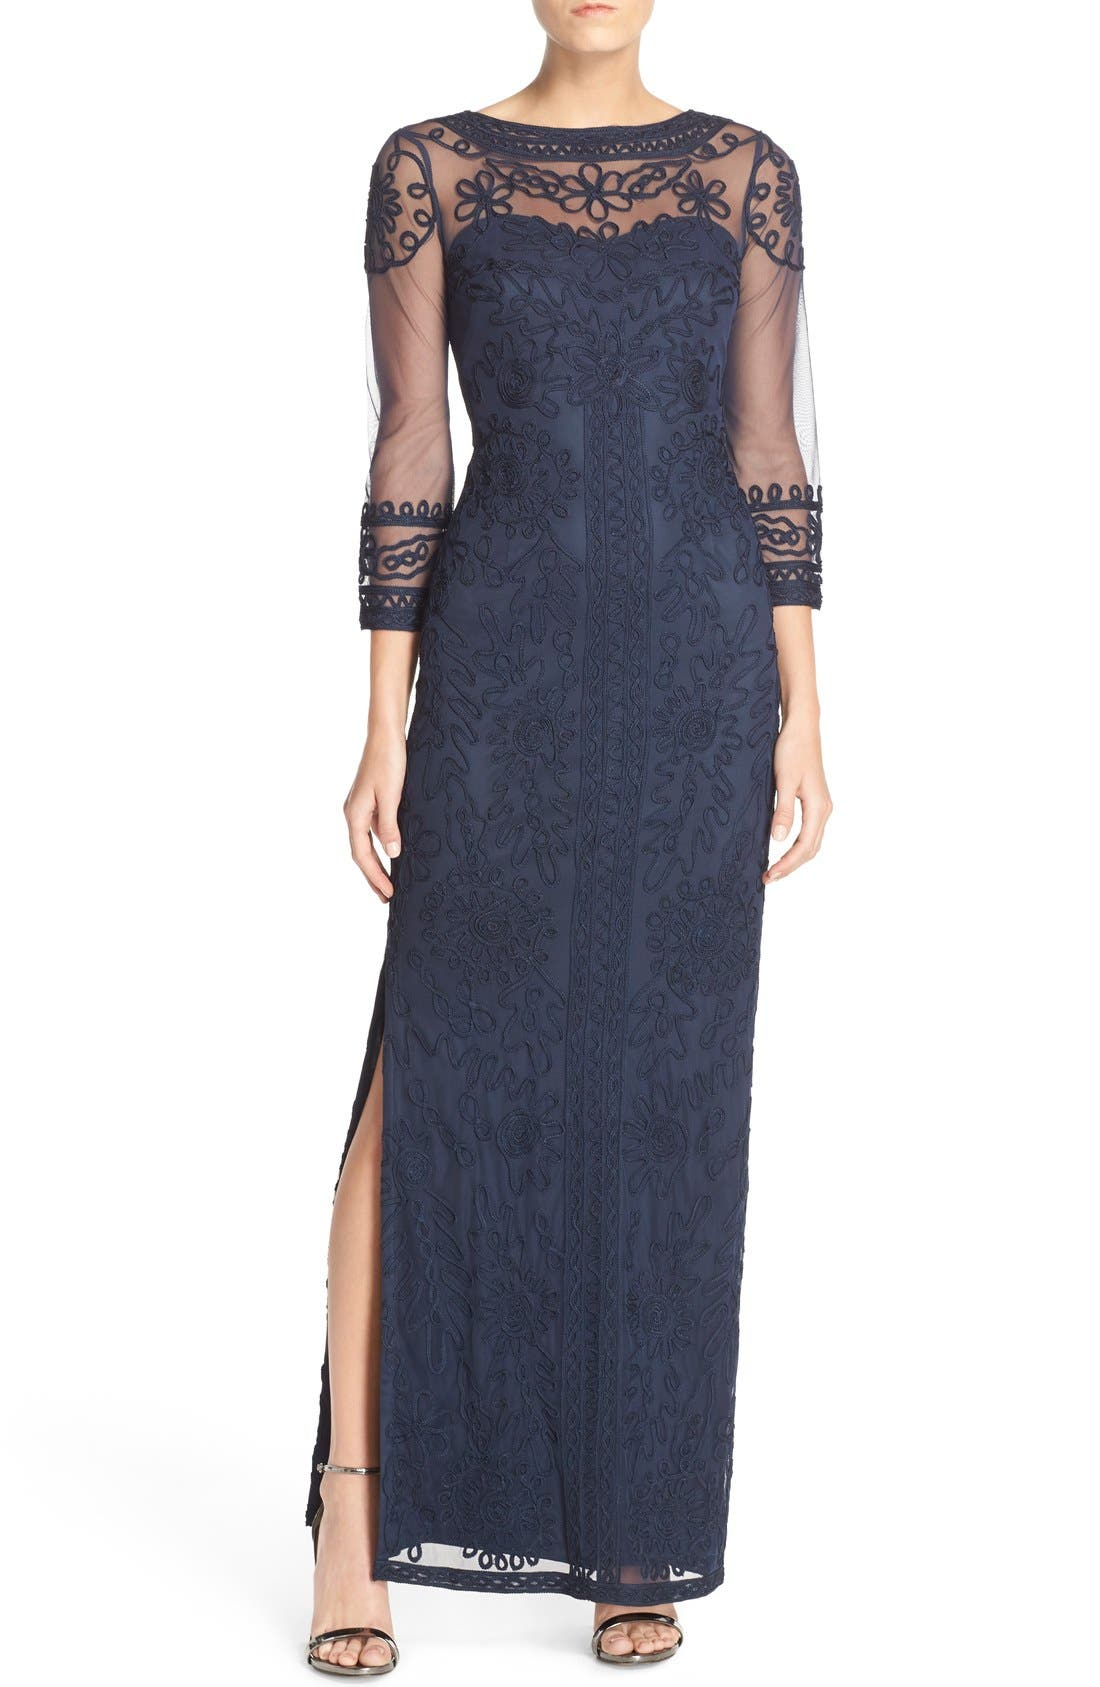 Js collection navy lace dress